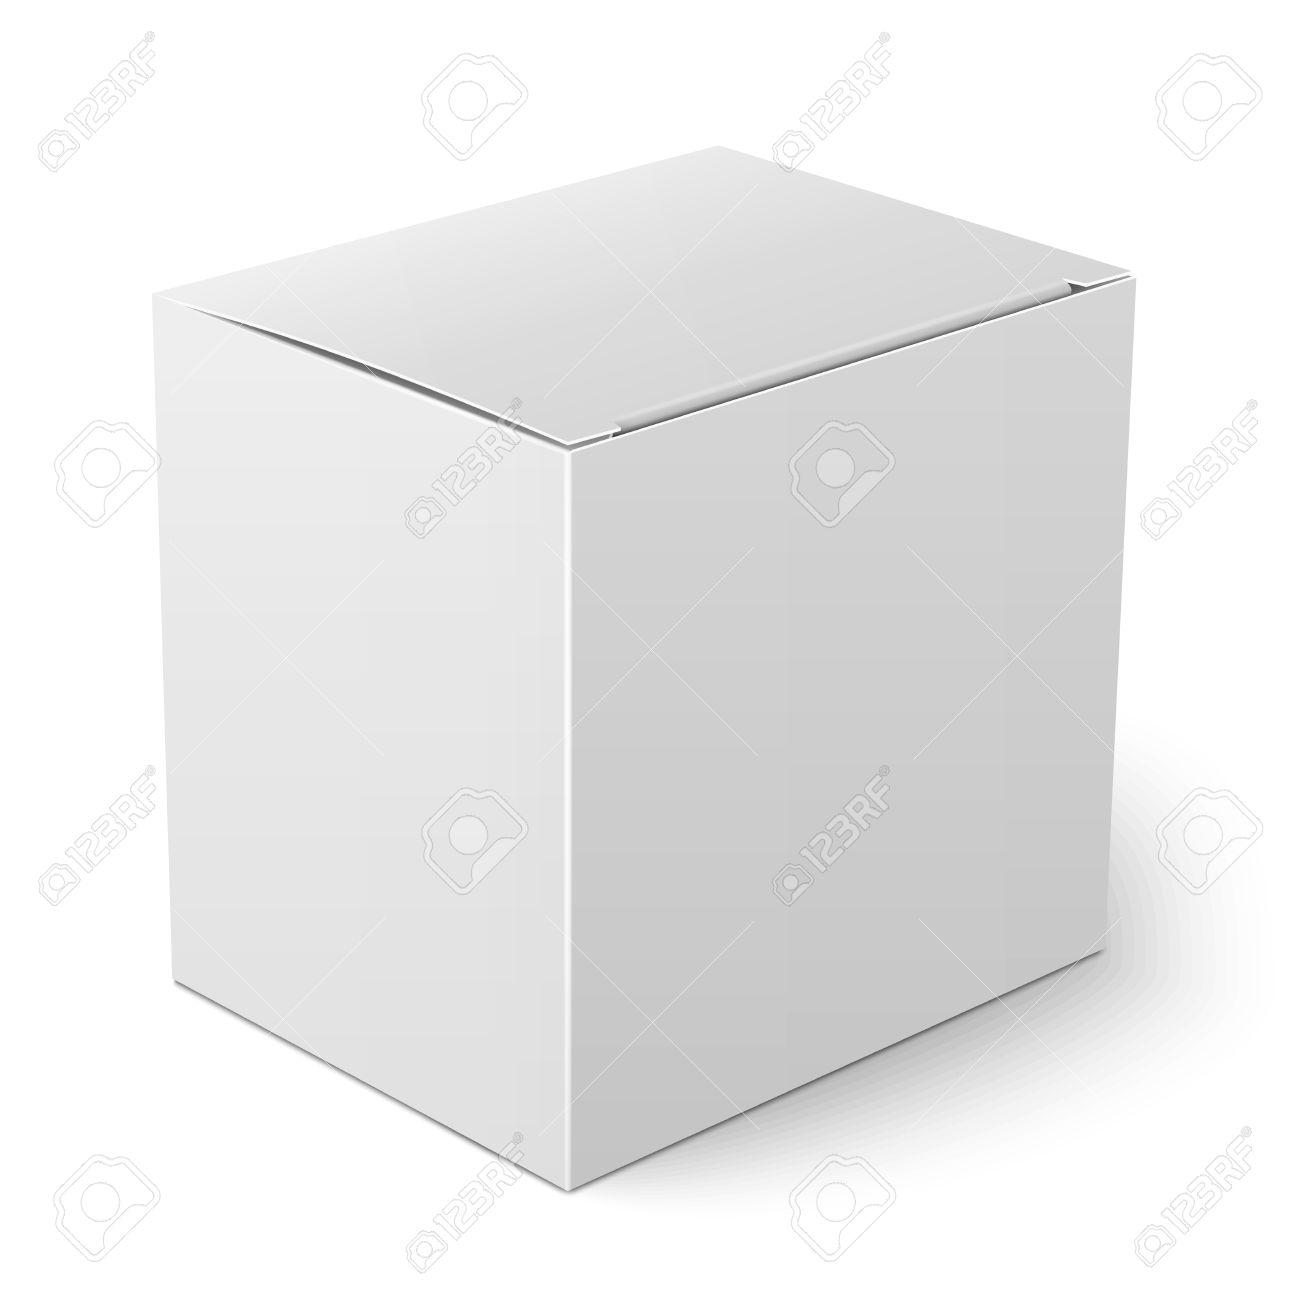 blank paper or cardboard box template with flap cover standing